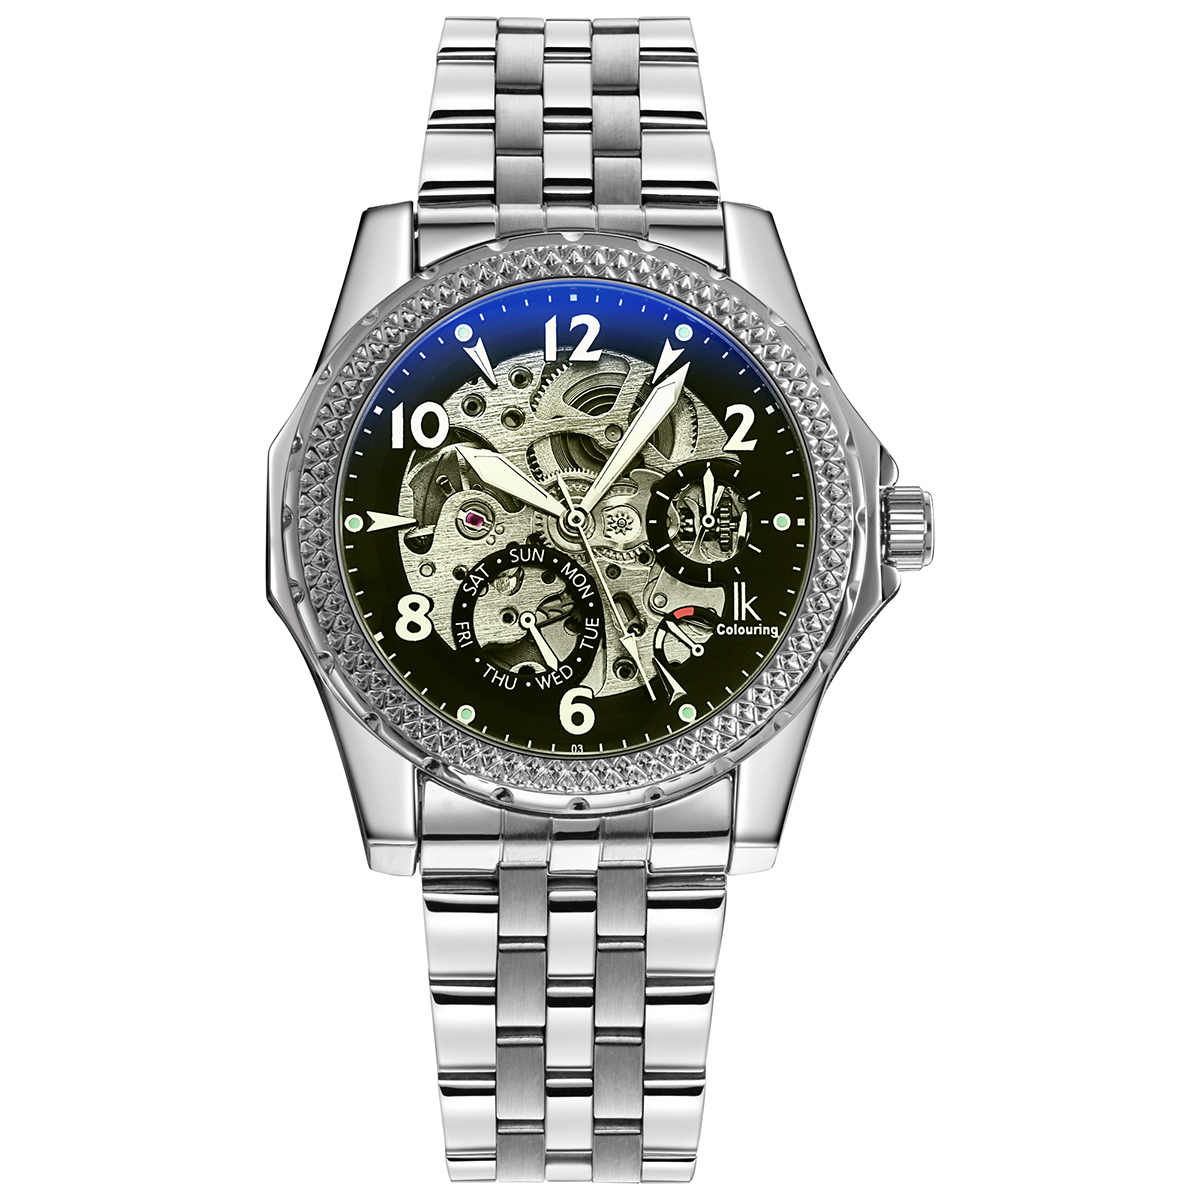 все цены на IK Colouring Automatic Mechanical Watch Decorative Small Dials Luminous Pointer Hollow Back Case Stainless Steel Men Wristwatch онлайн